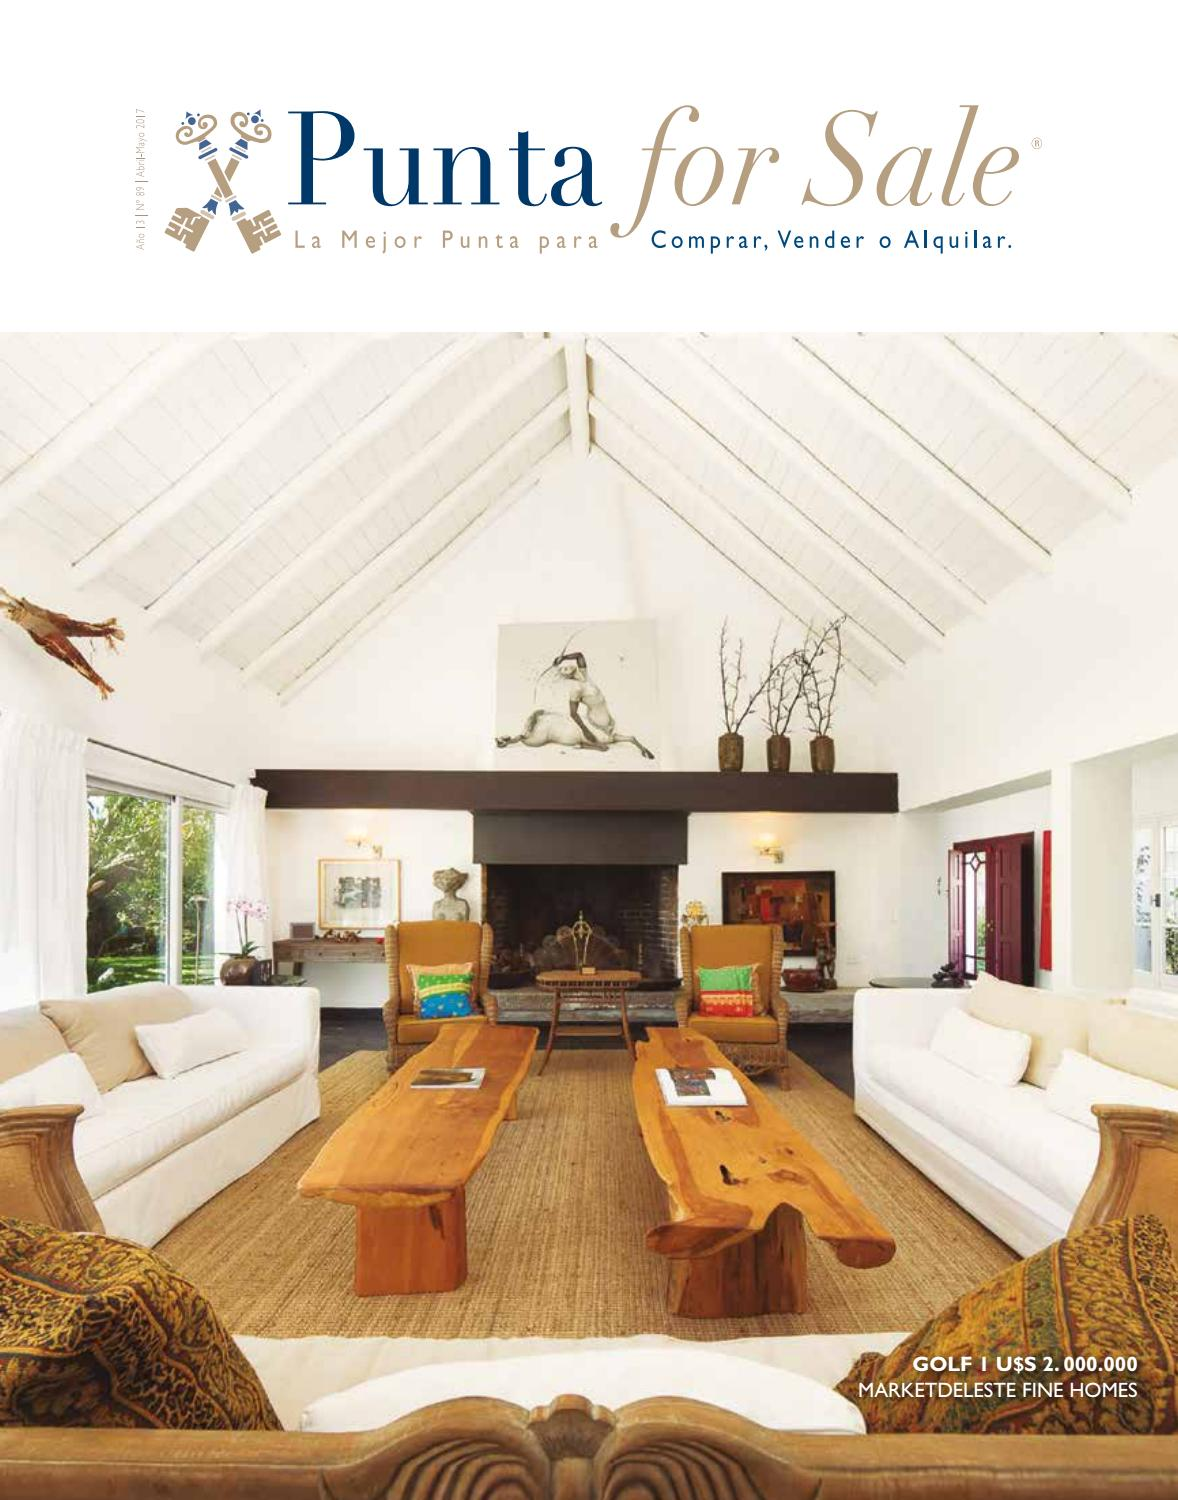 Revista de Real Estate Punta For Sale, edición #89 Abril-Mayo 2017